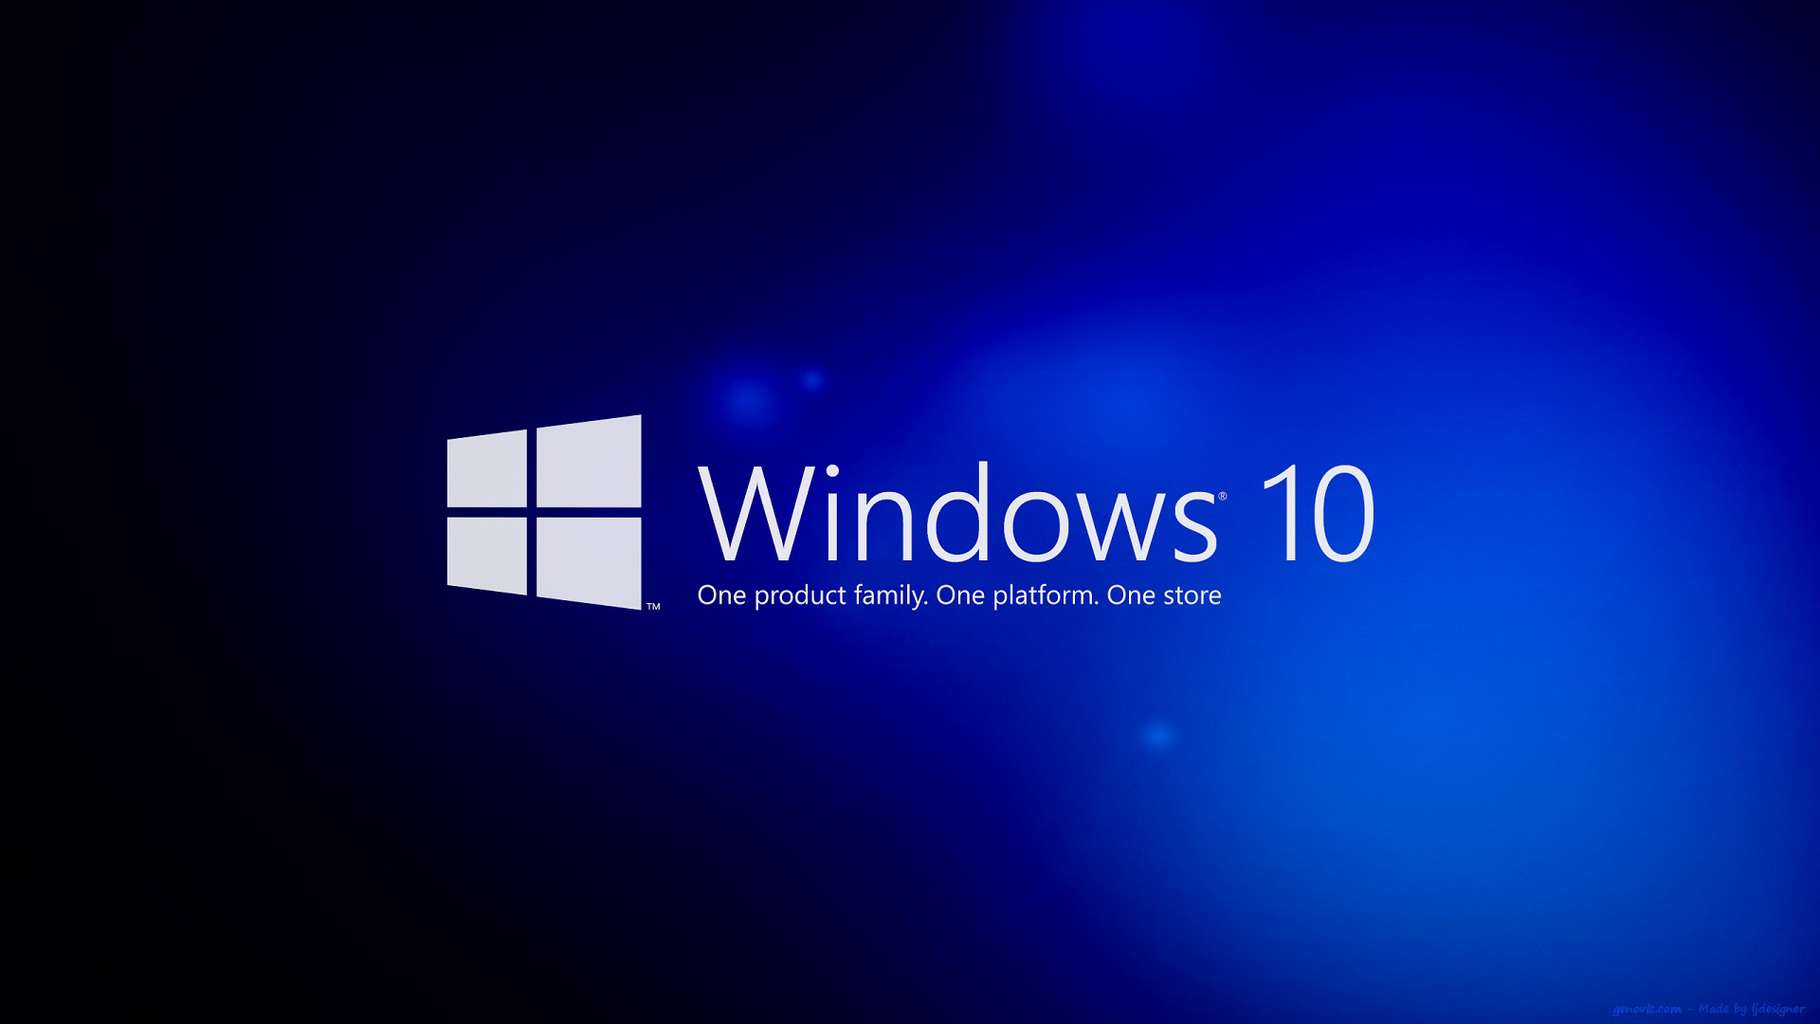 23 of the Best Windows 10 Wallpaper Backgrounds 1820x1024